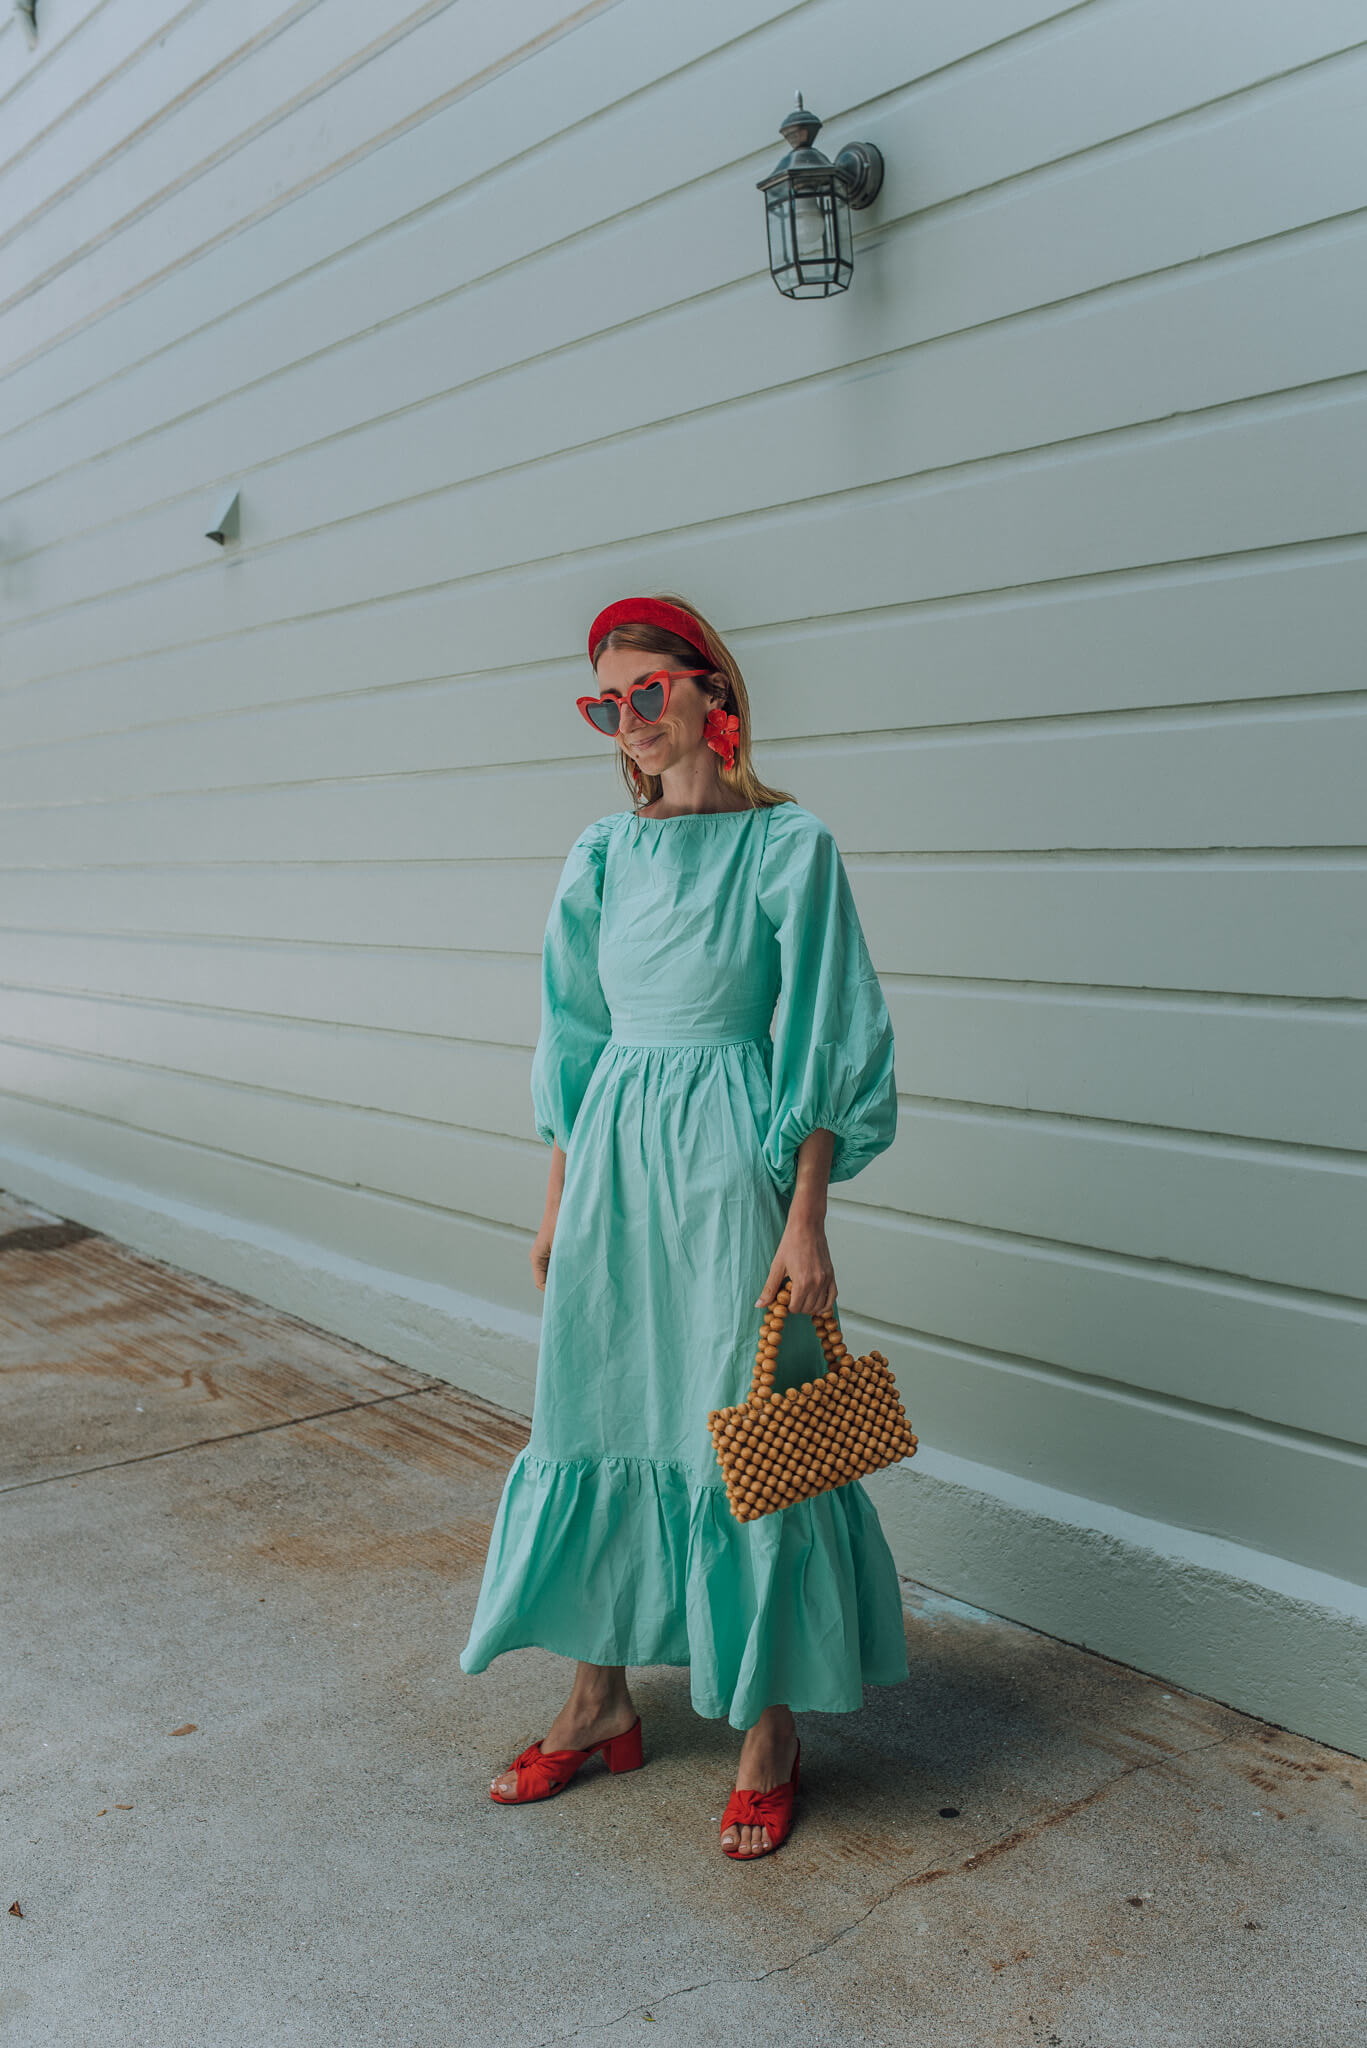 Chanel-Mint-Green-Dress.jpg